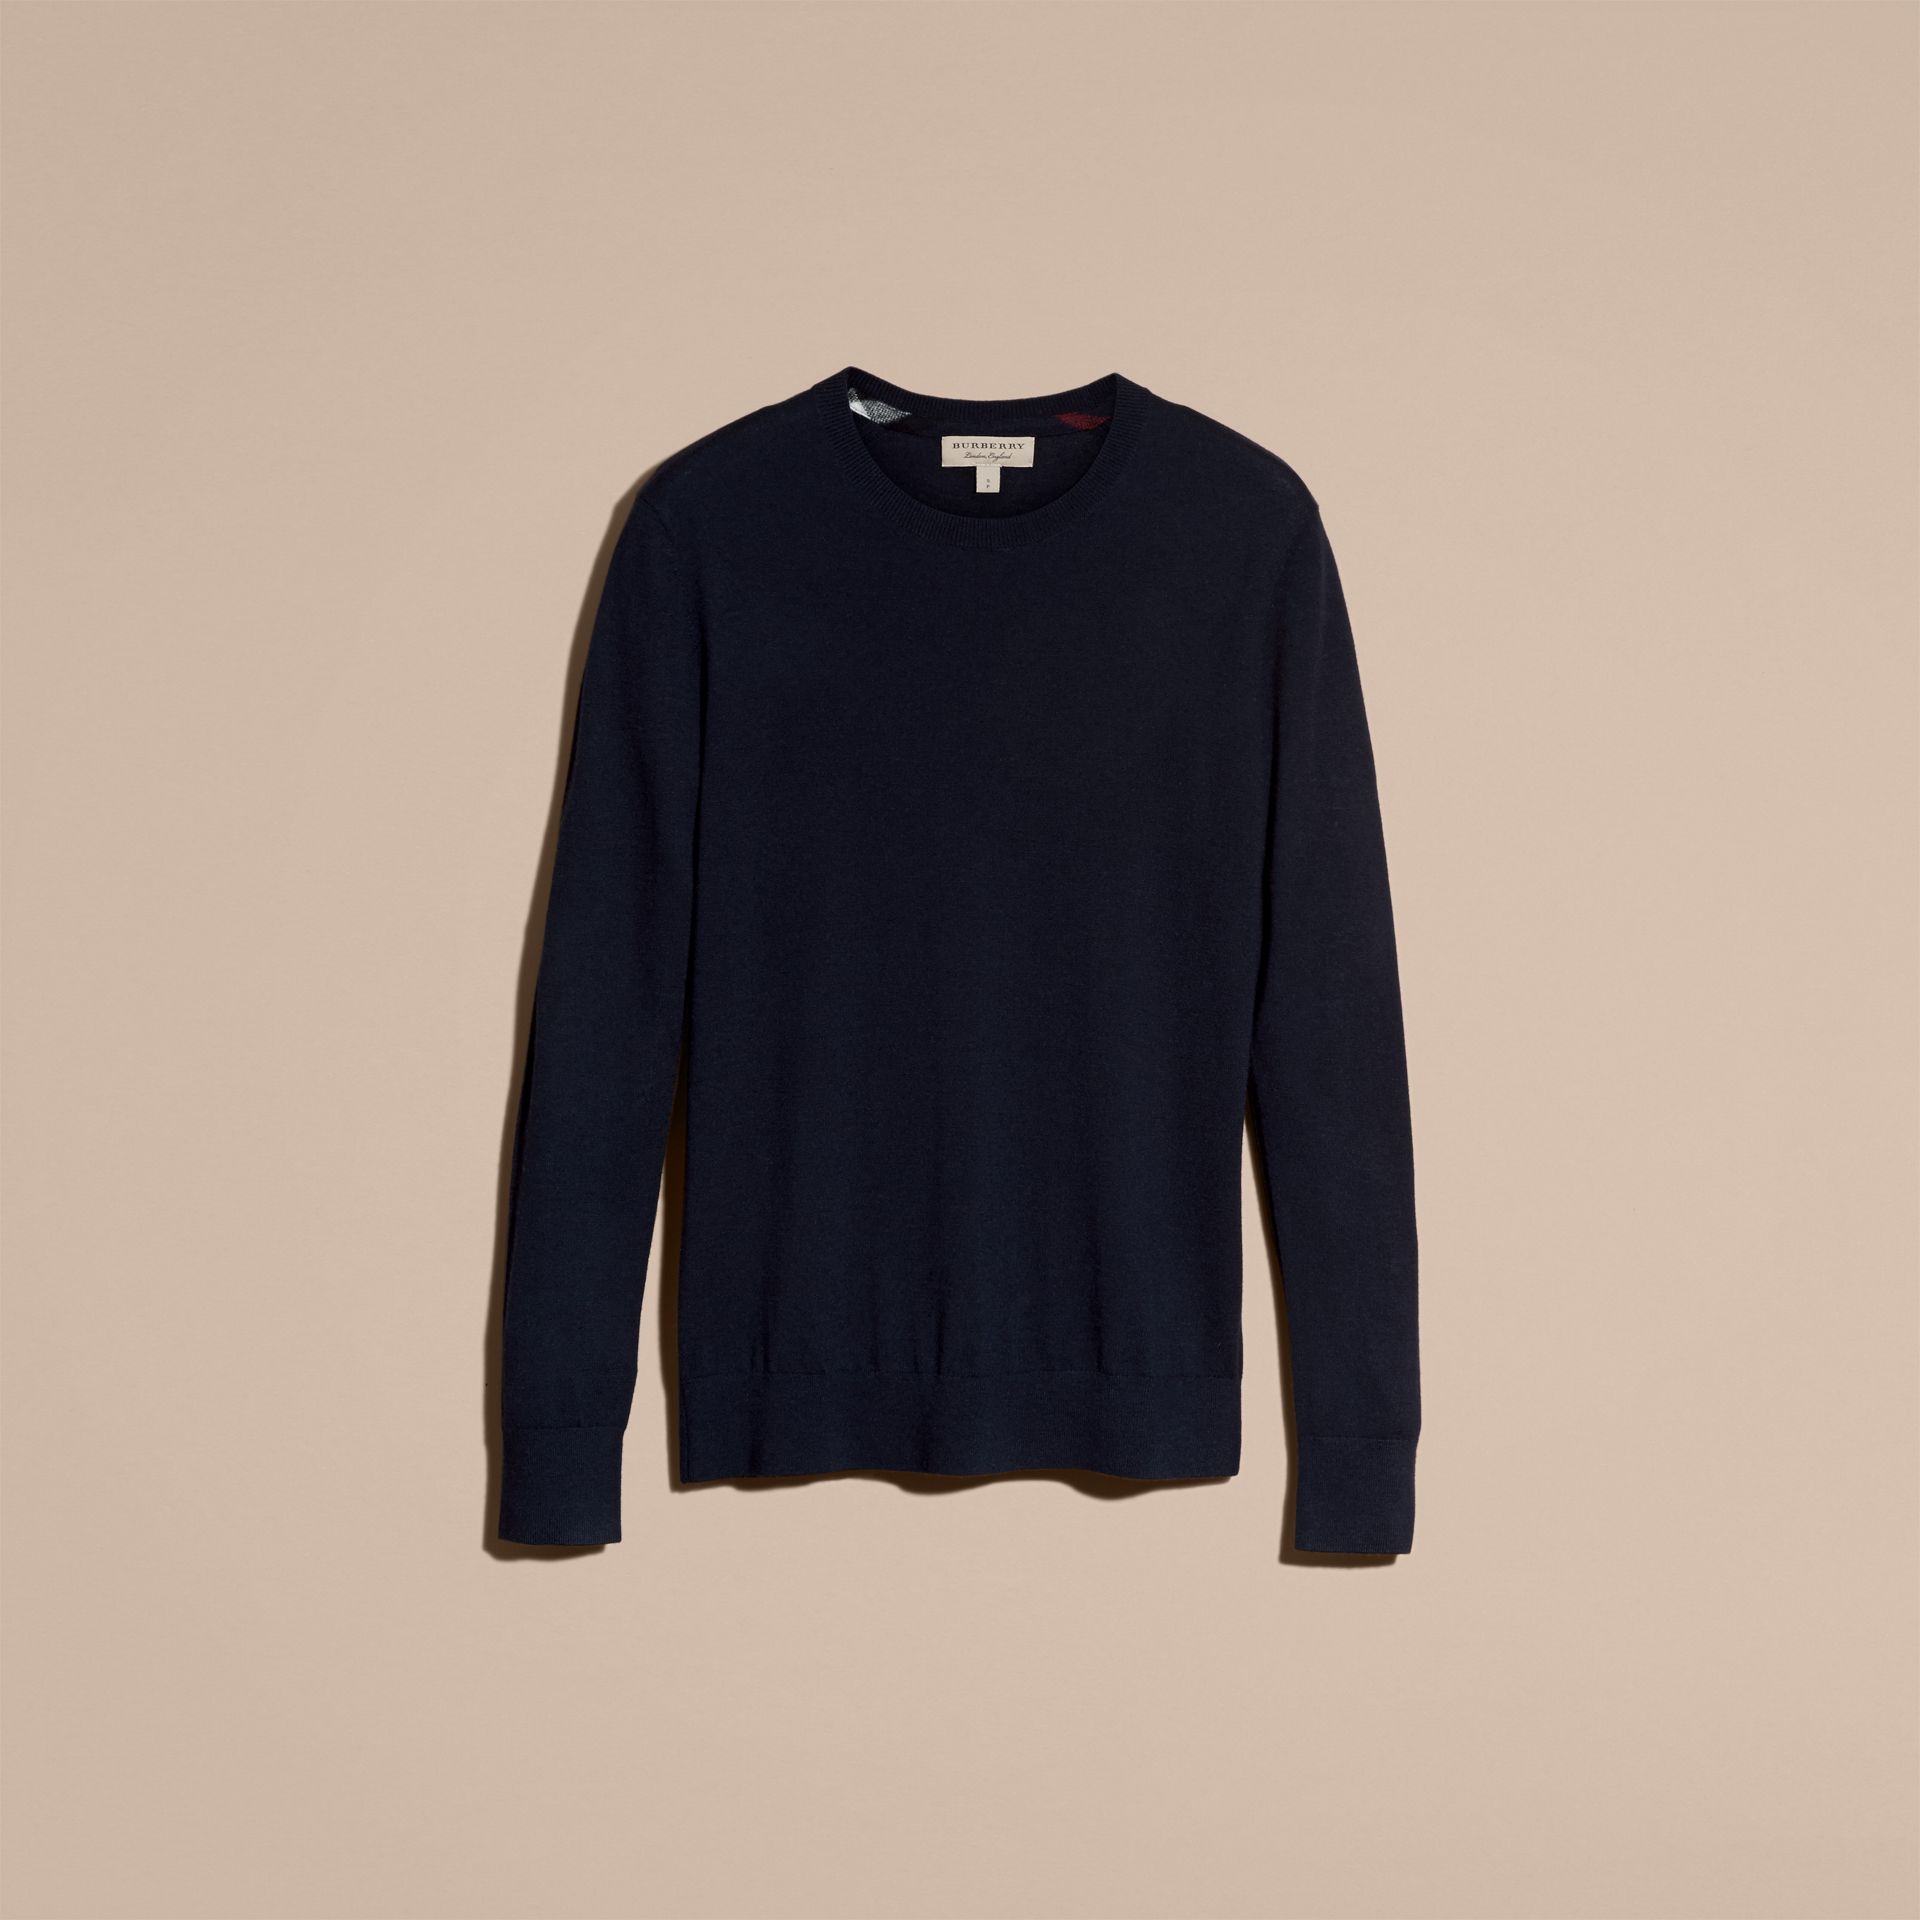 Navy Lightweight Crew Neck Cashmere Sweater with Check Trim Navy - gallery image 4